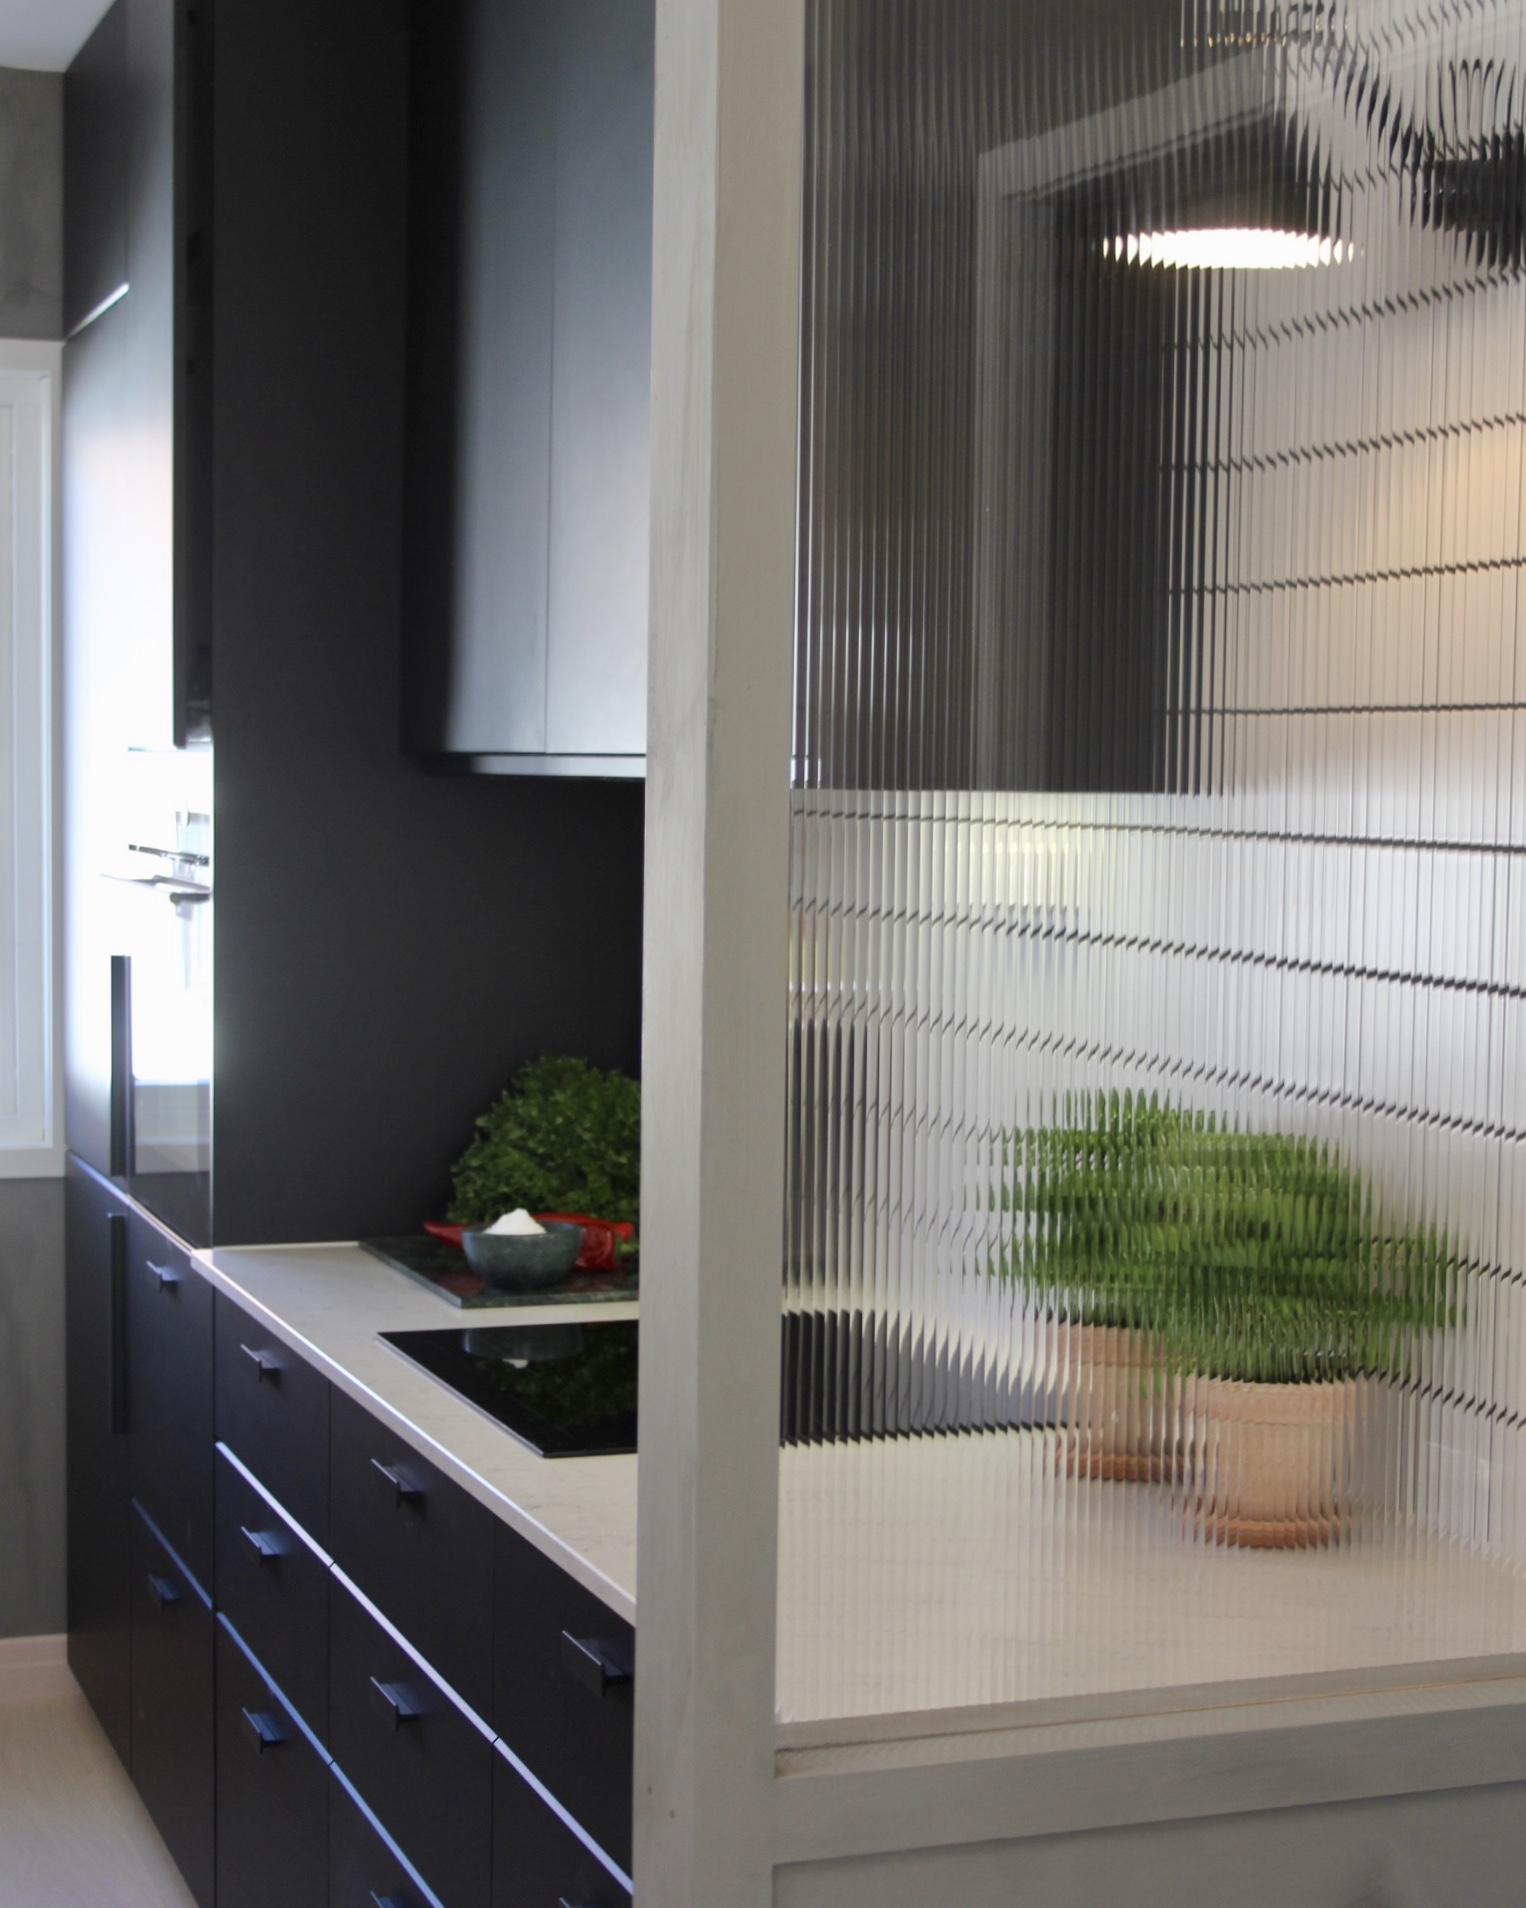 Fluted glass can be found in similar properties from the late 50's and were installed to allow light to pass through while separating the kitchen.